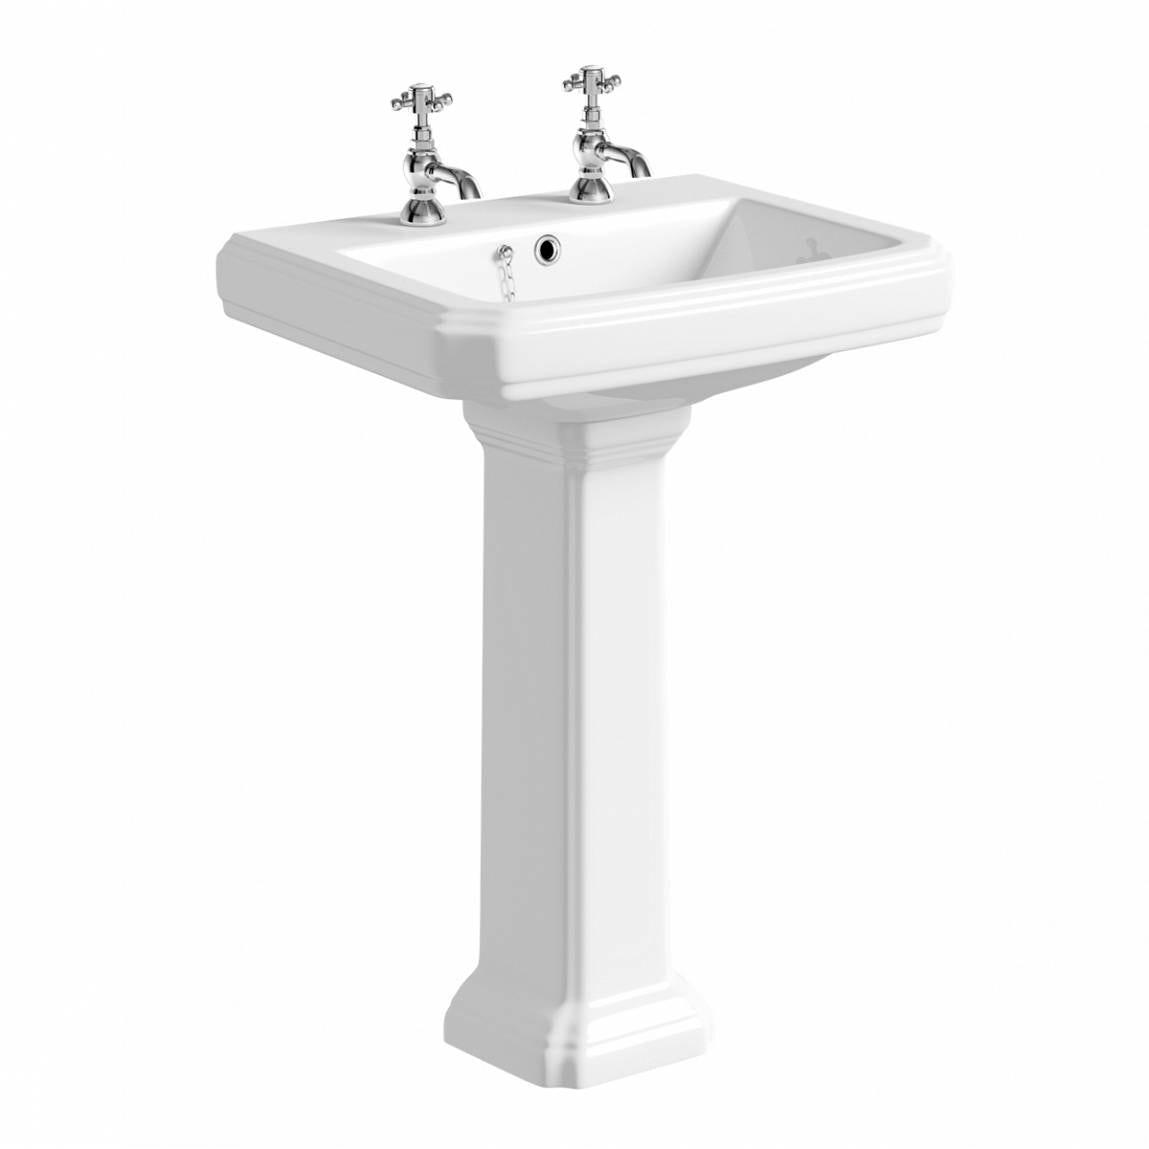 The Bath Co. Dulwich 2 tap hole full pedestal basin 600mm with waste